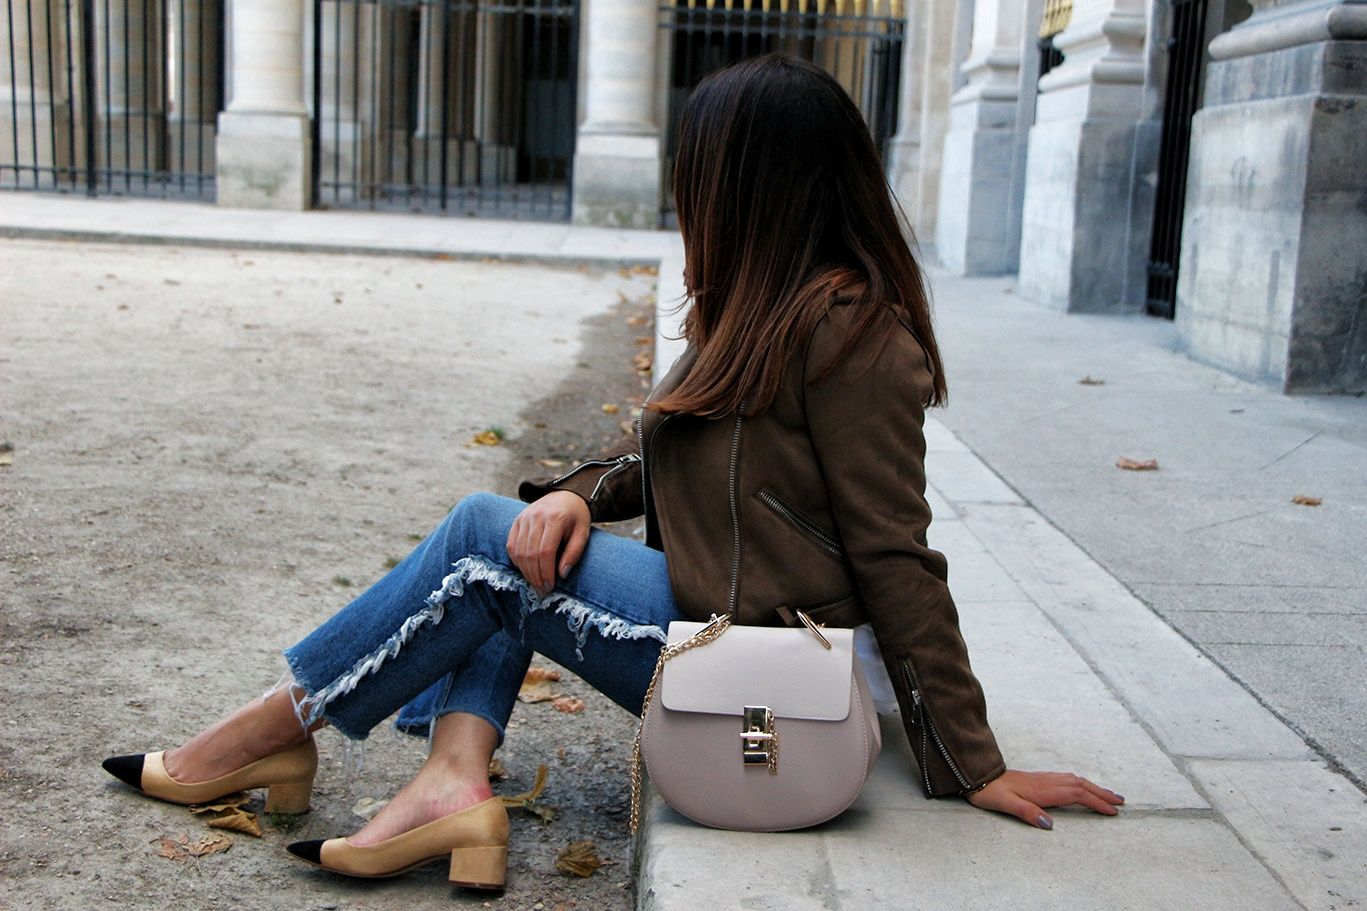 perfecto zara, brownie, zara, perfecto femme, perfecto-femme, sheinside, inspi chloe drew, chloe, pull and bear, chaussures, chanel, ceinture pull and bear